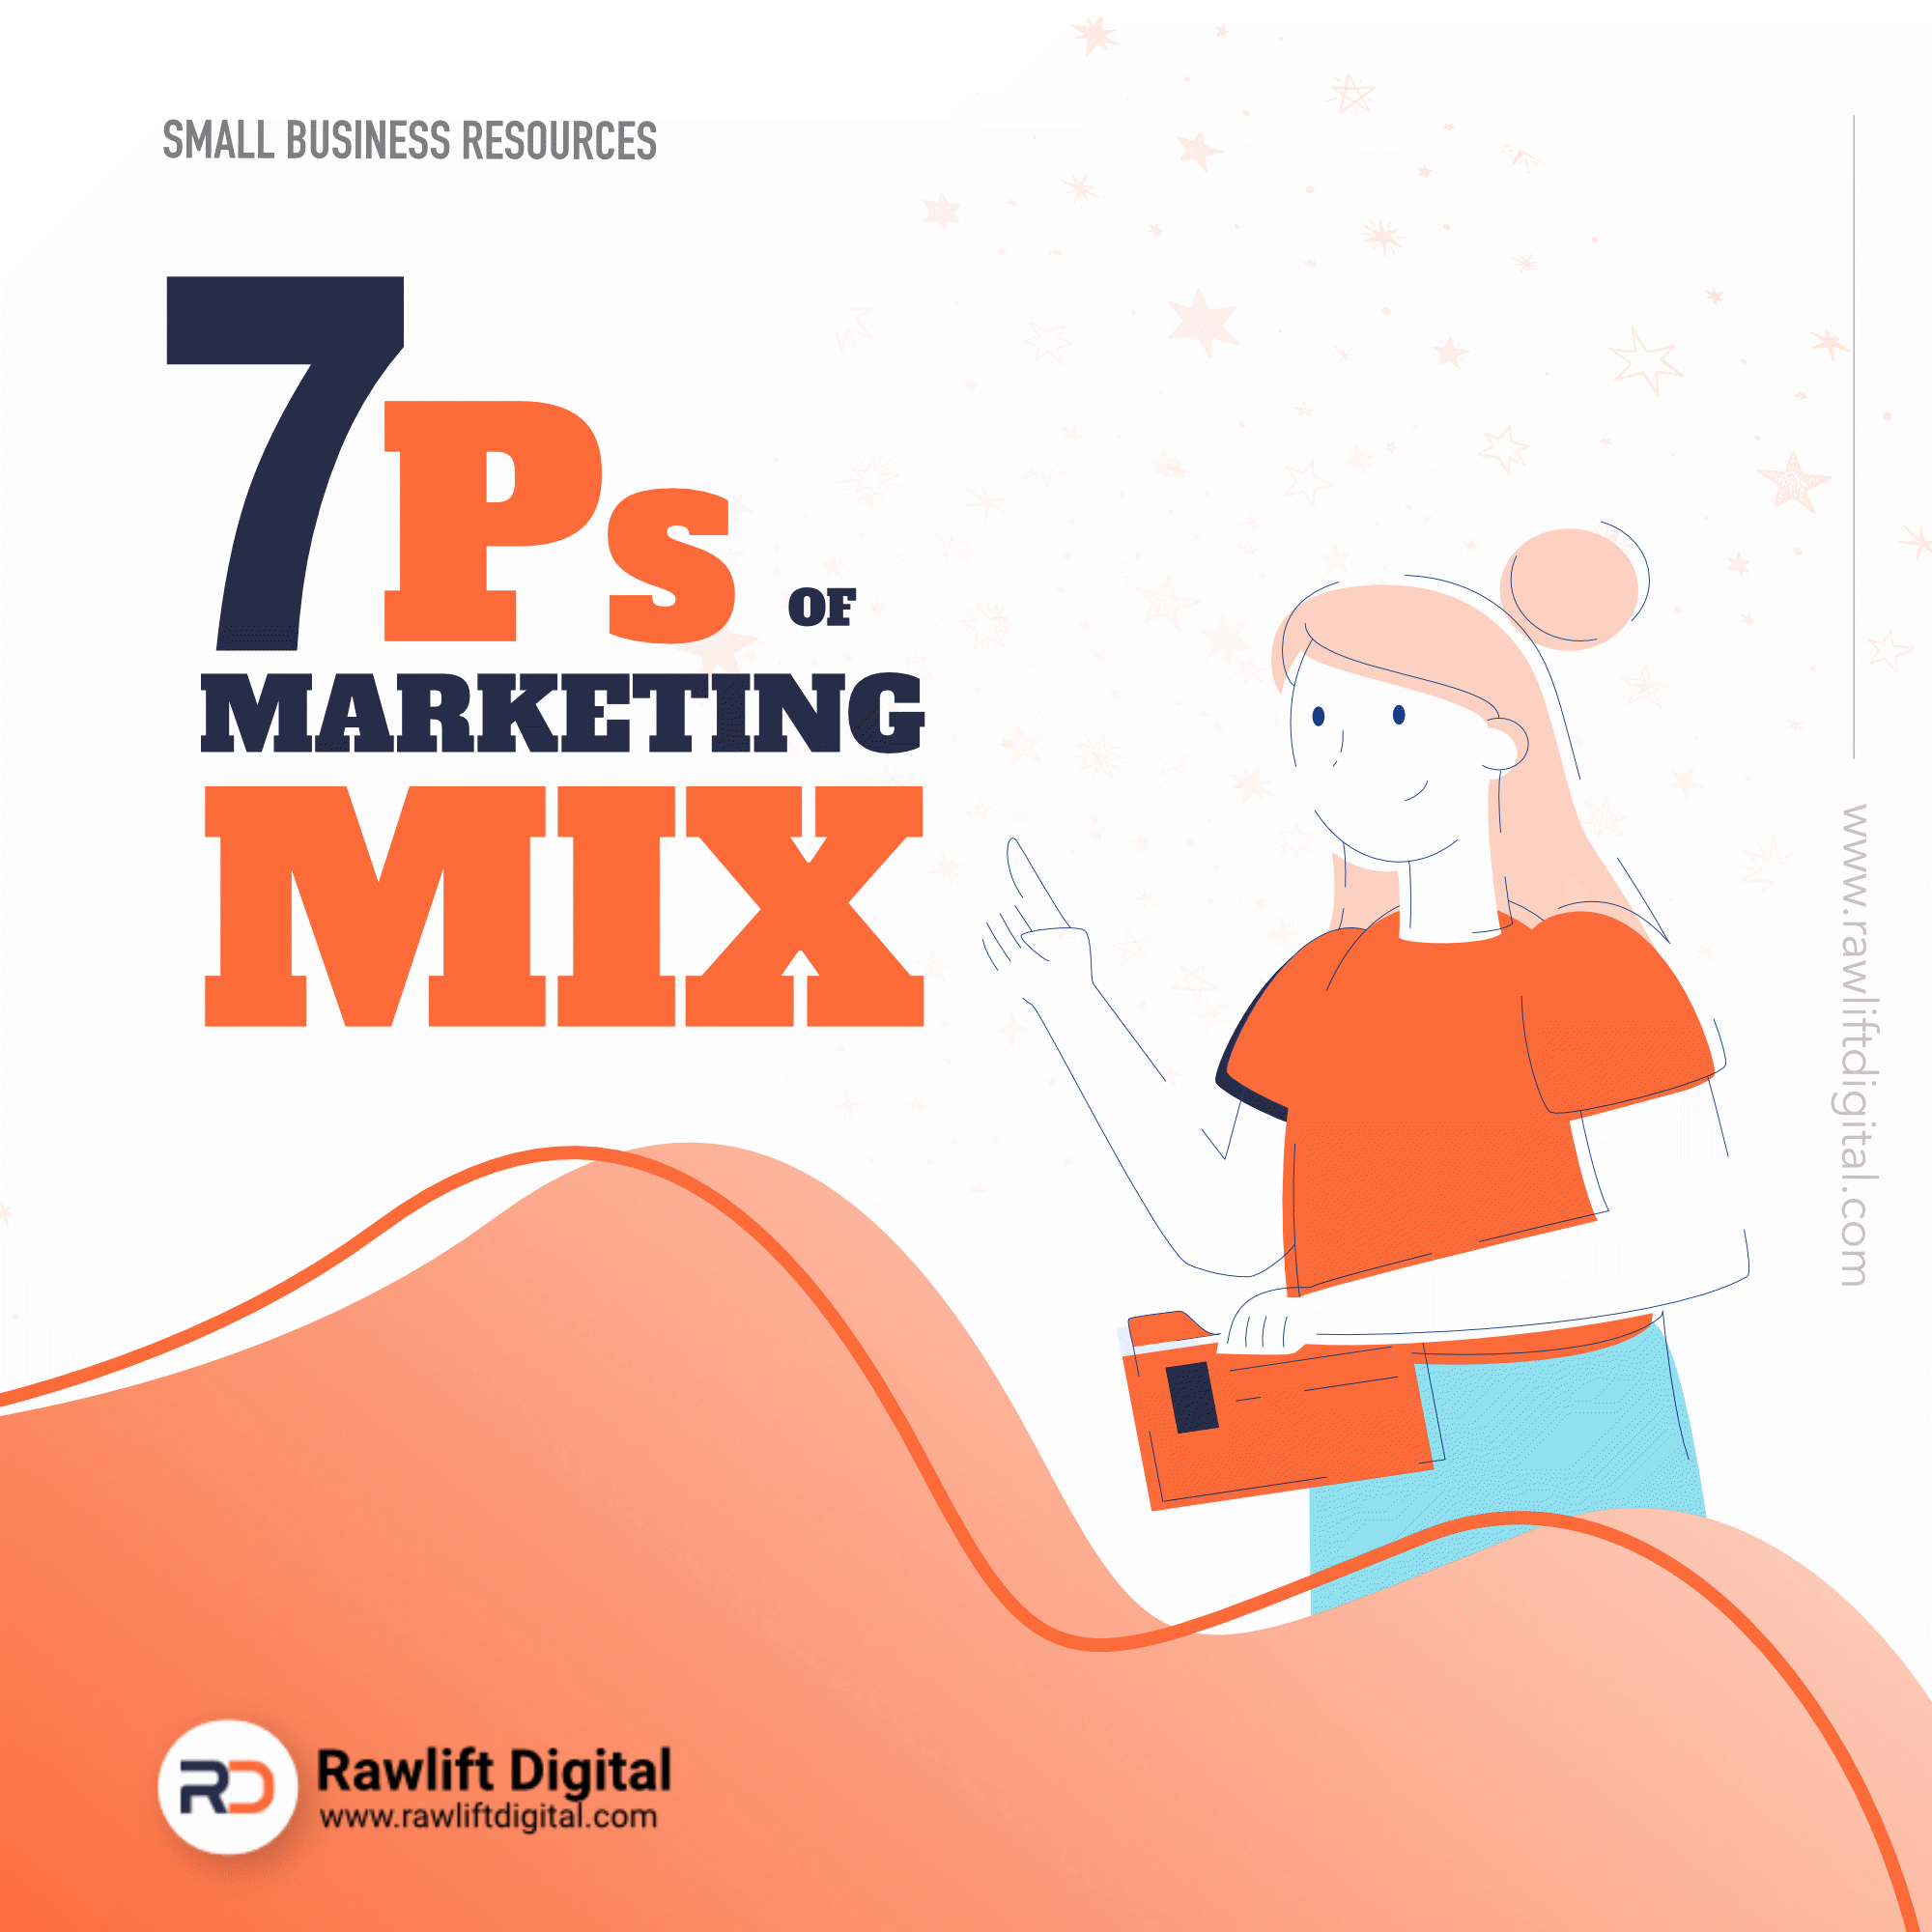 What is the 7Ps Marketing Mix and how should you use it in your marketing plan?